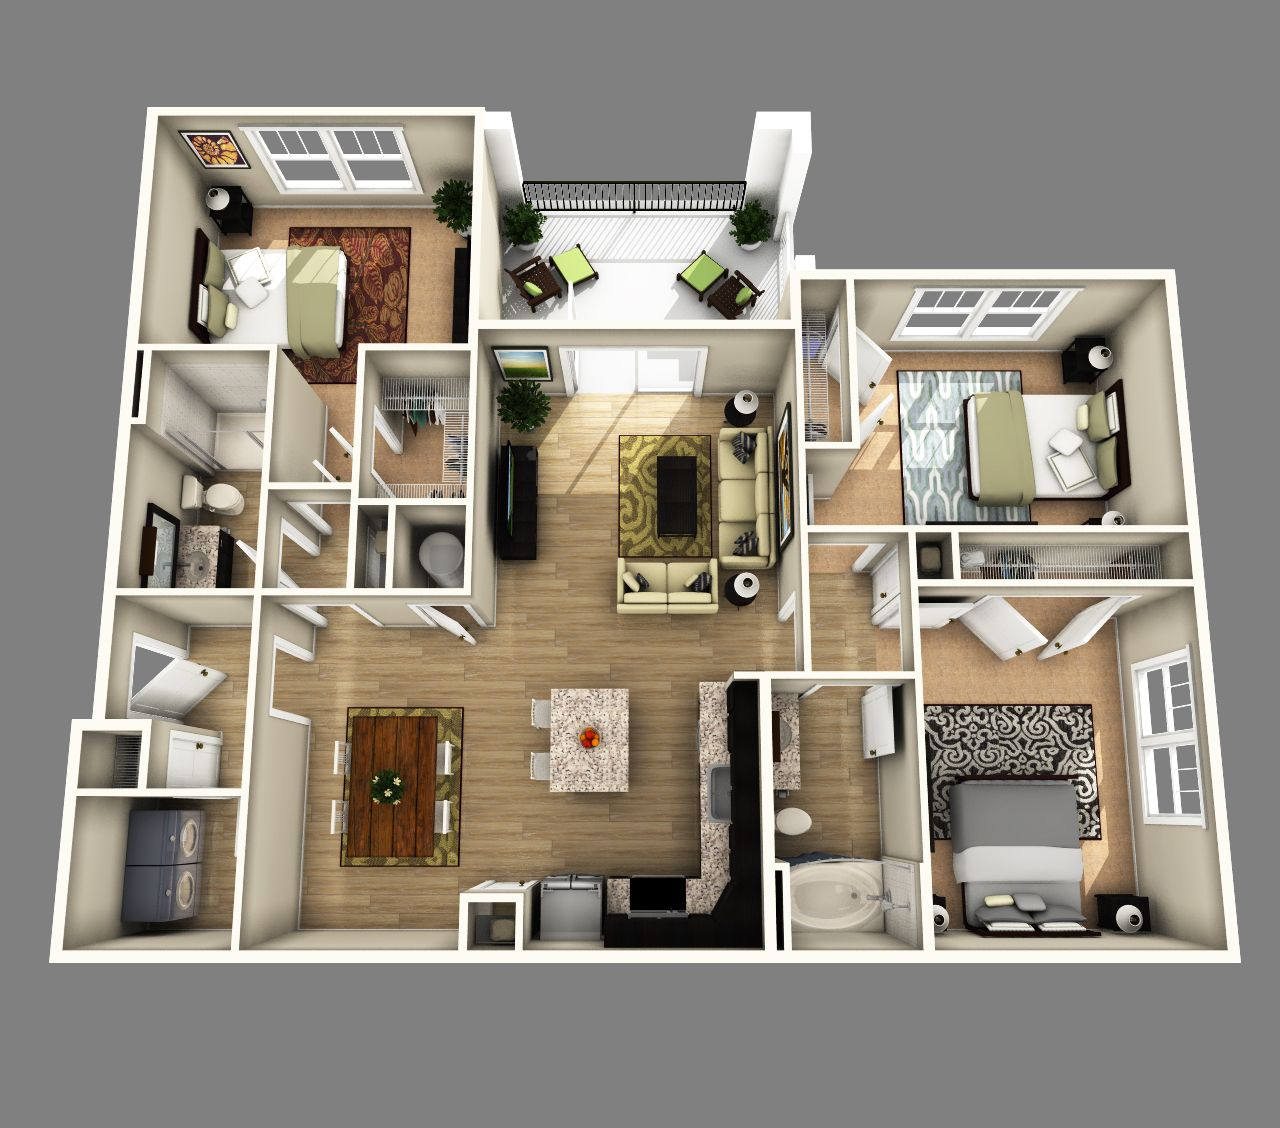 3 Bedroom Apartment Floorplan Pin By Lorna Sadorra On Loft Apartments In 2019 House Plans 3